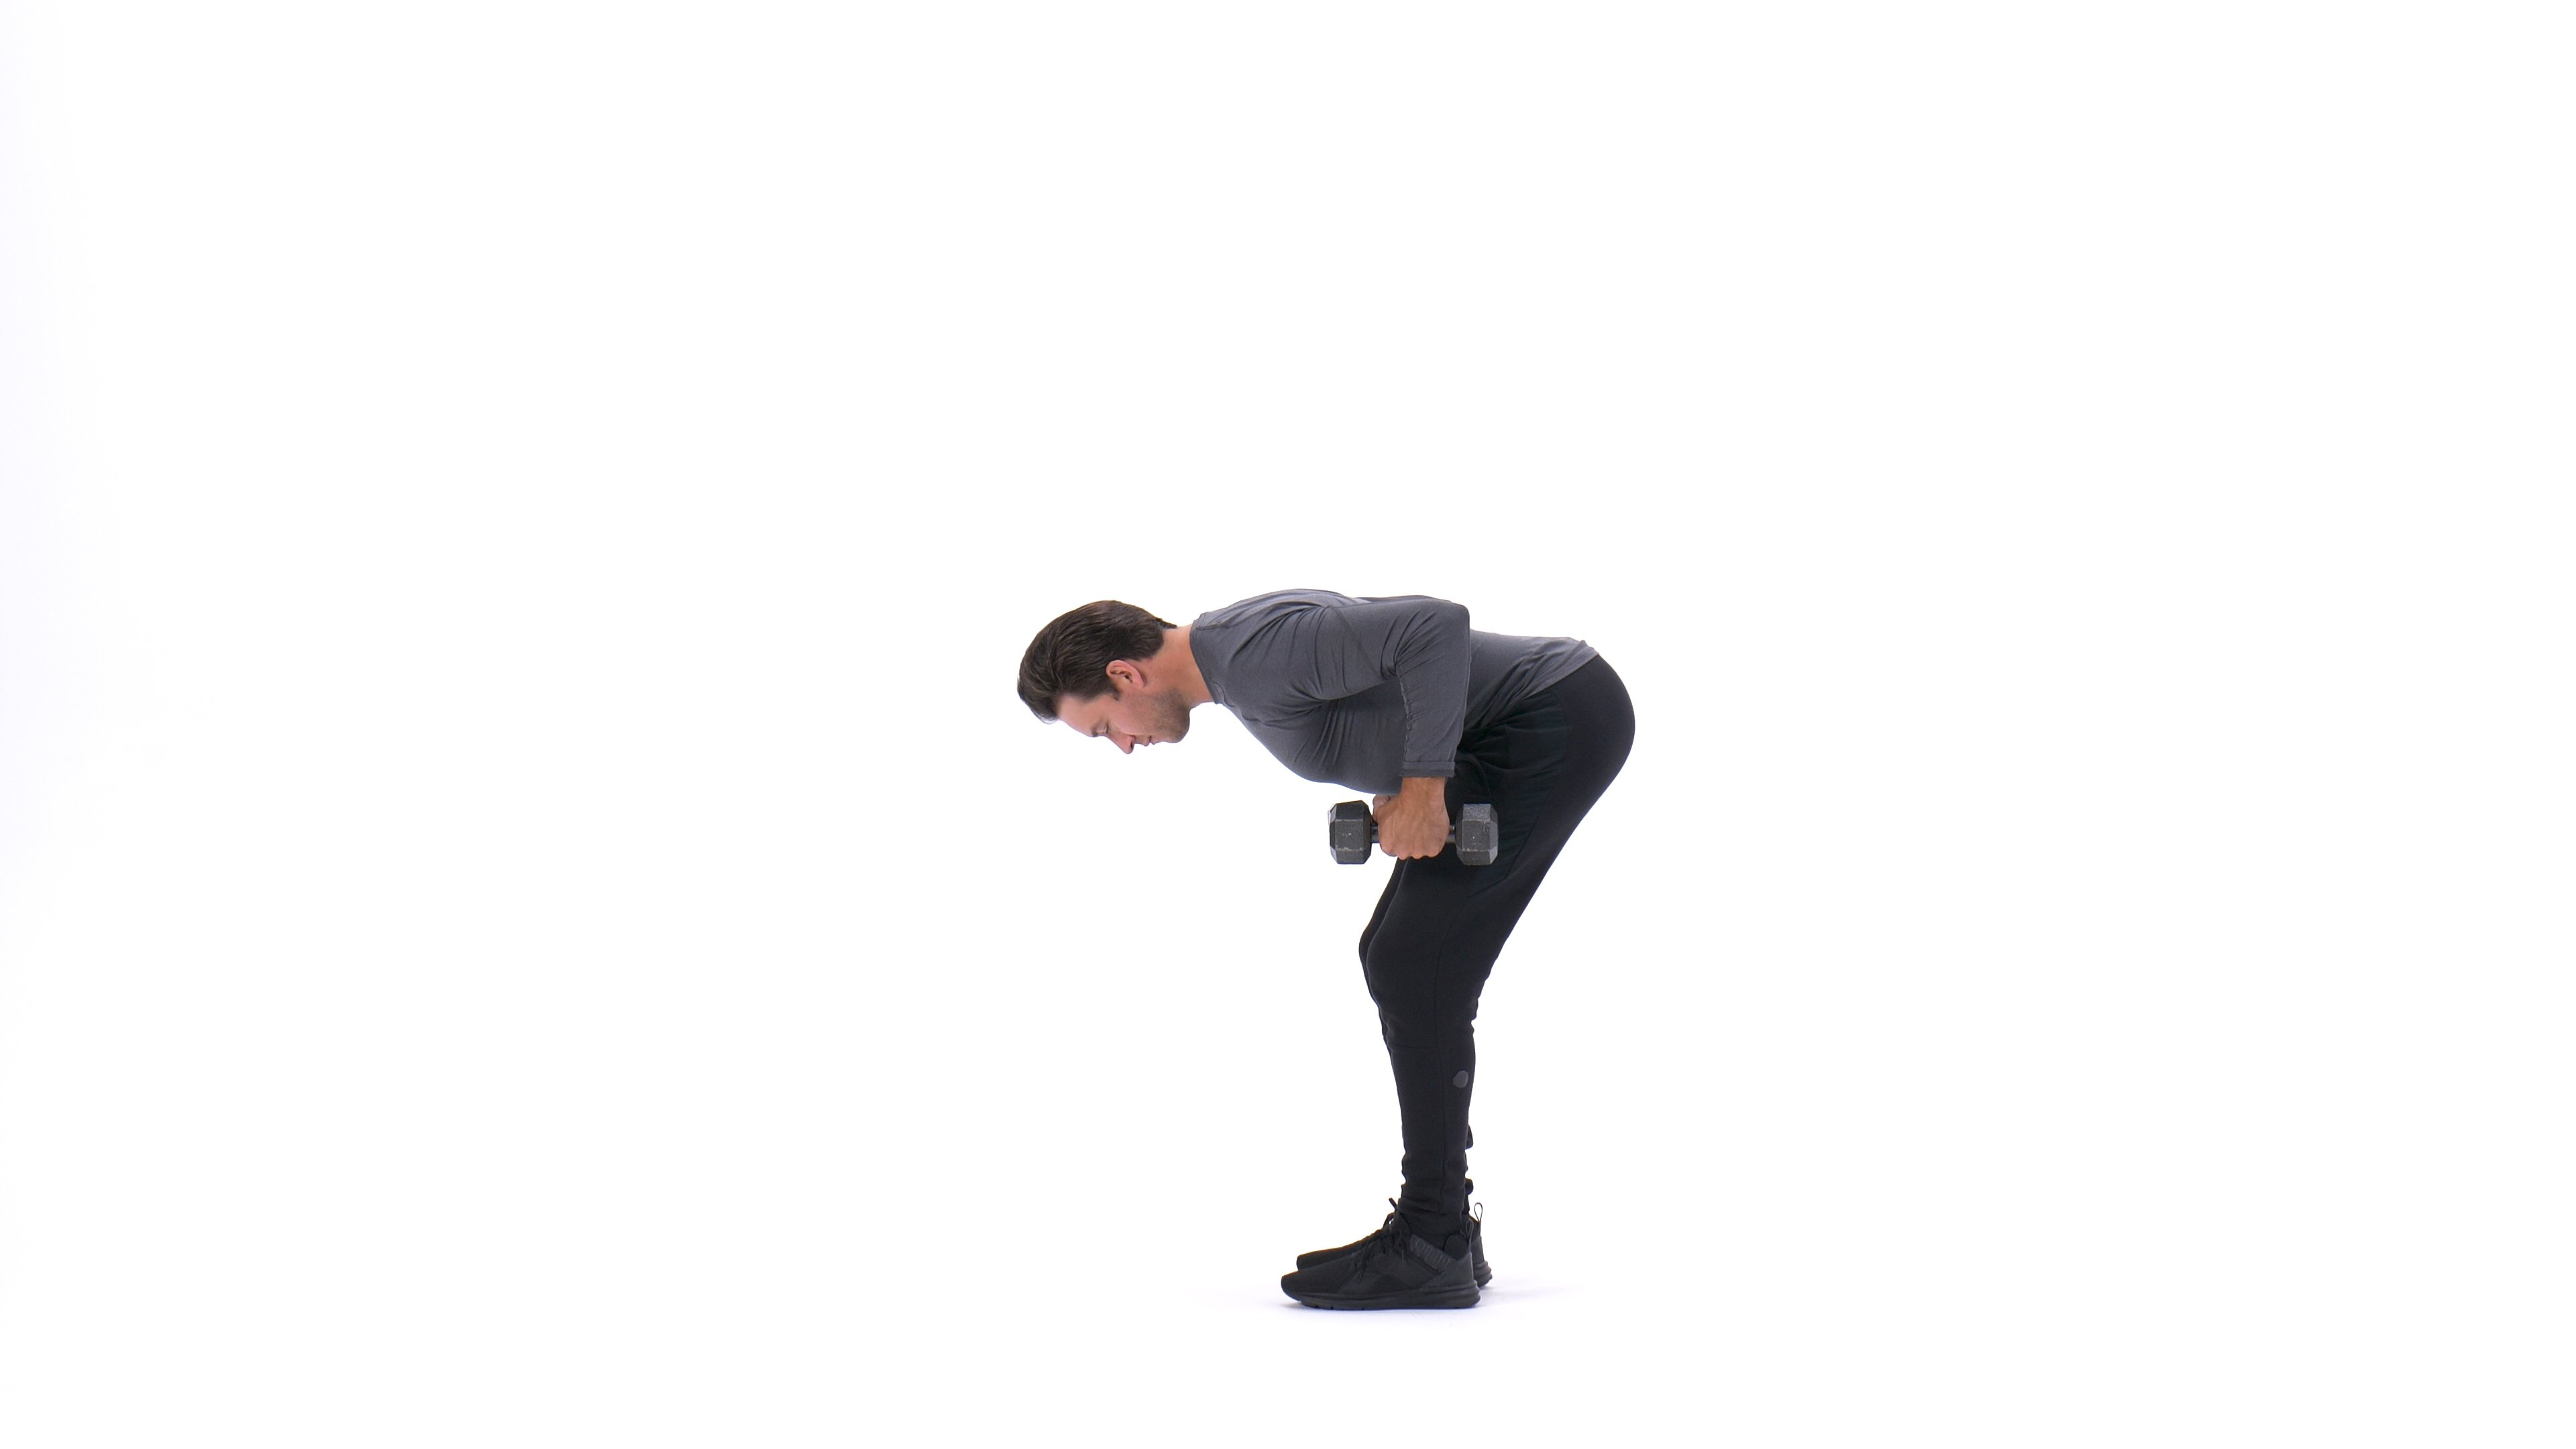 Double-arm triceps kick-back image